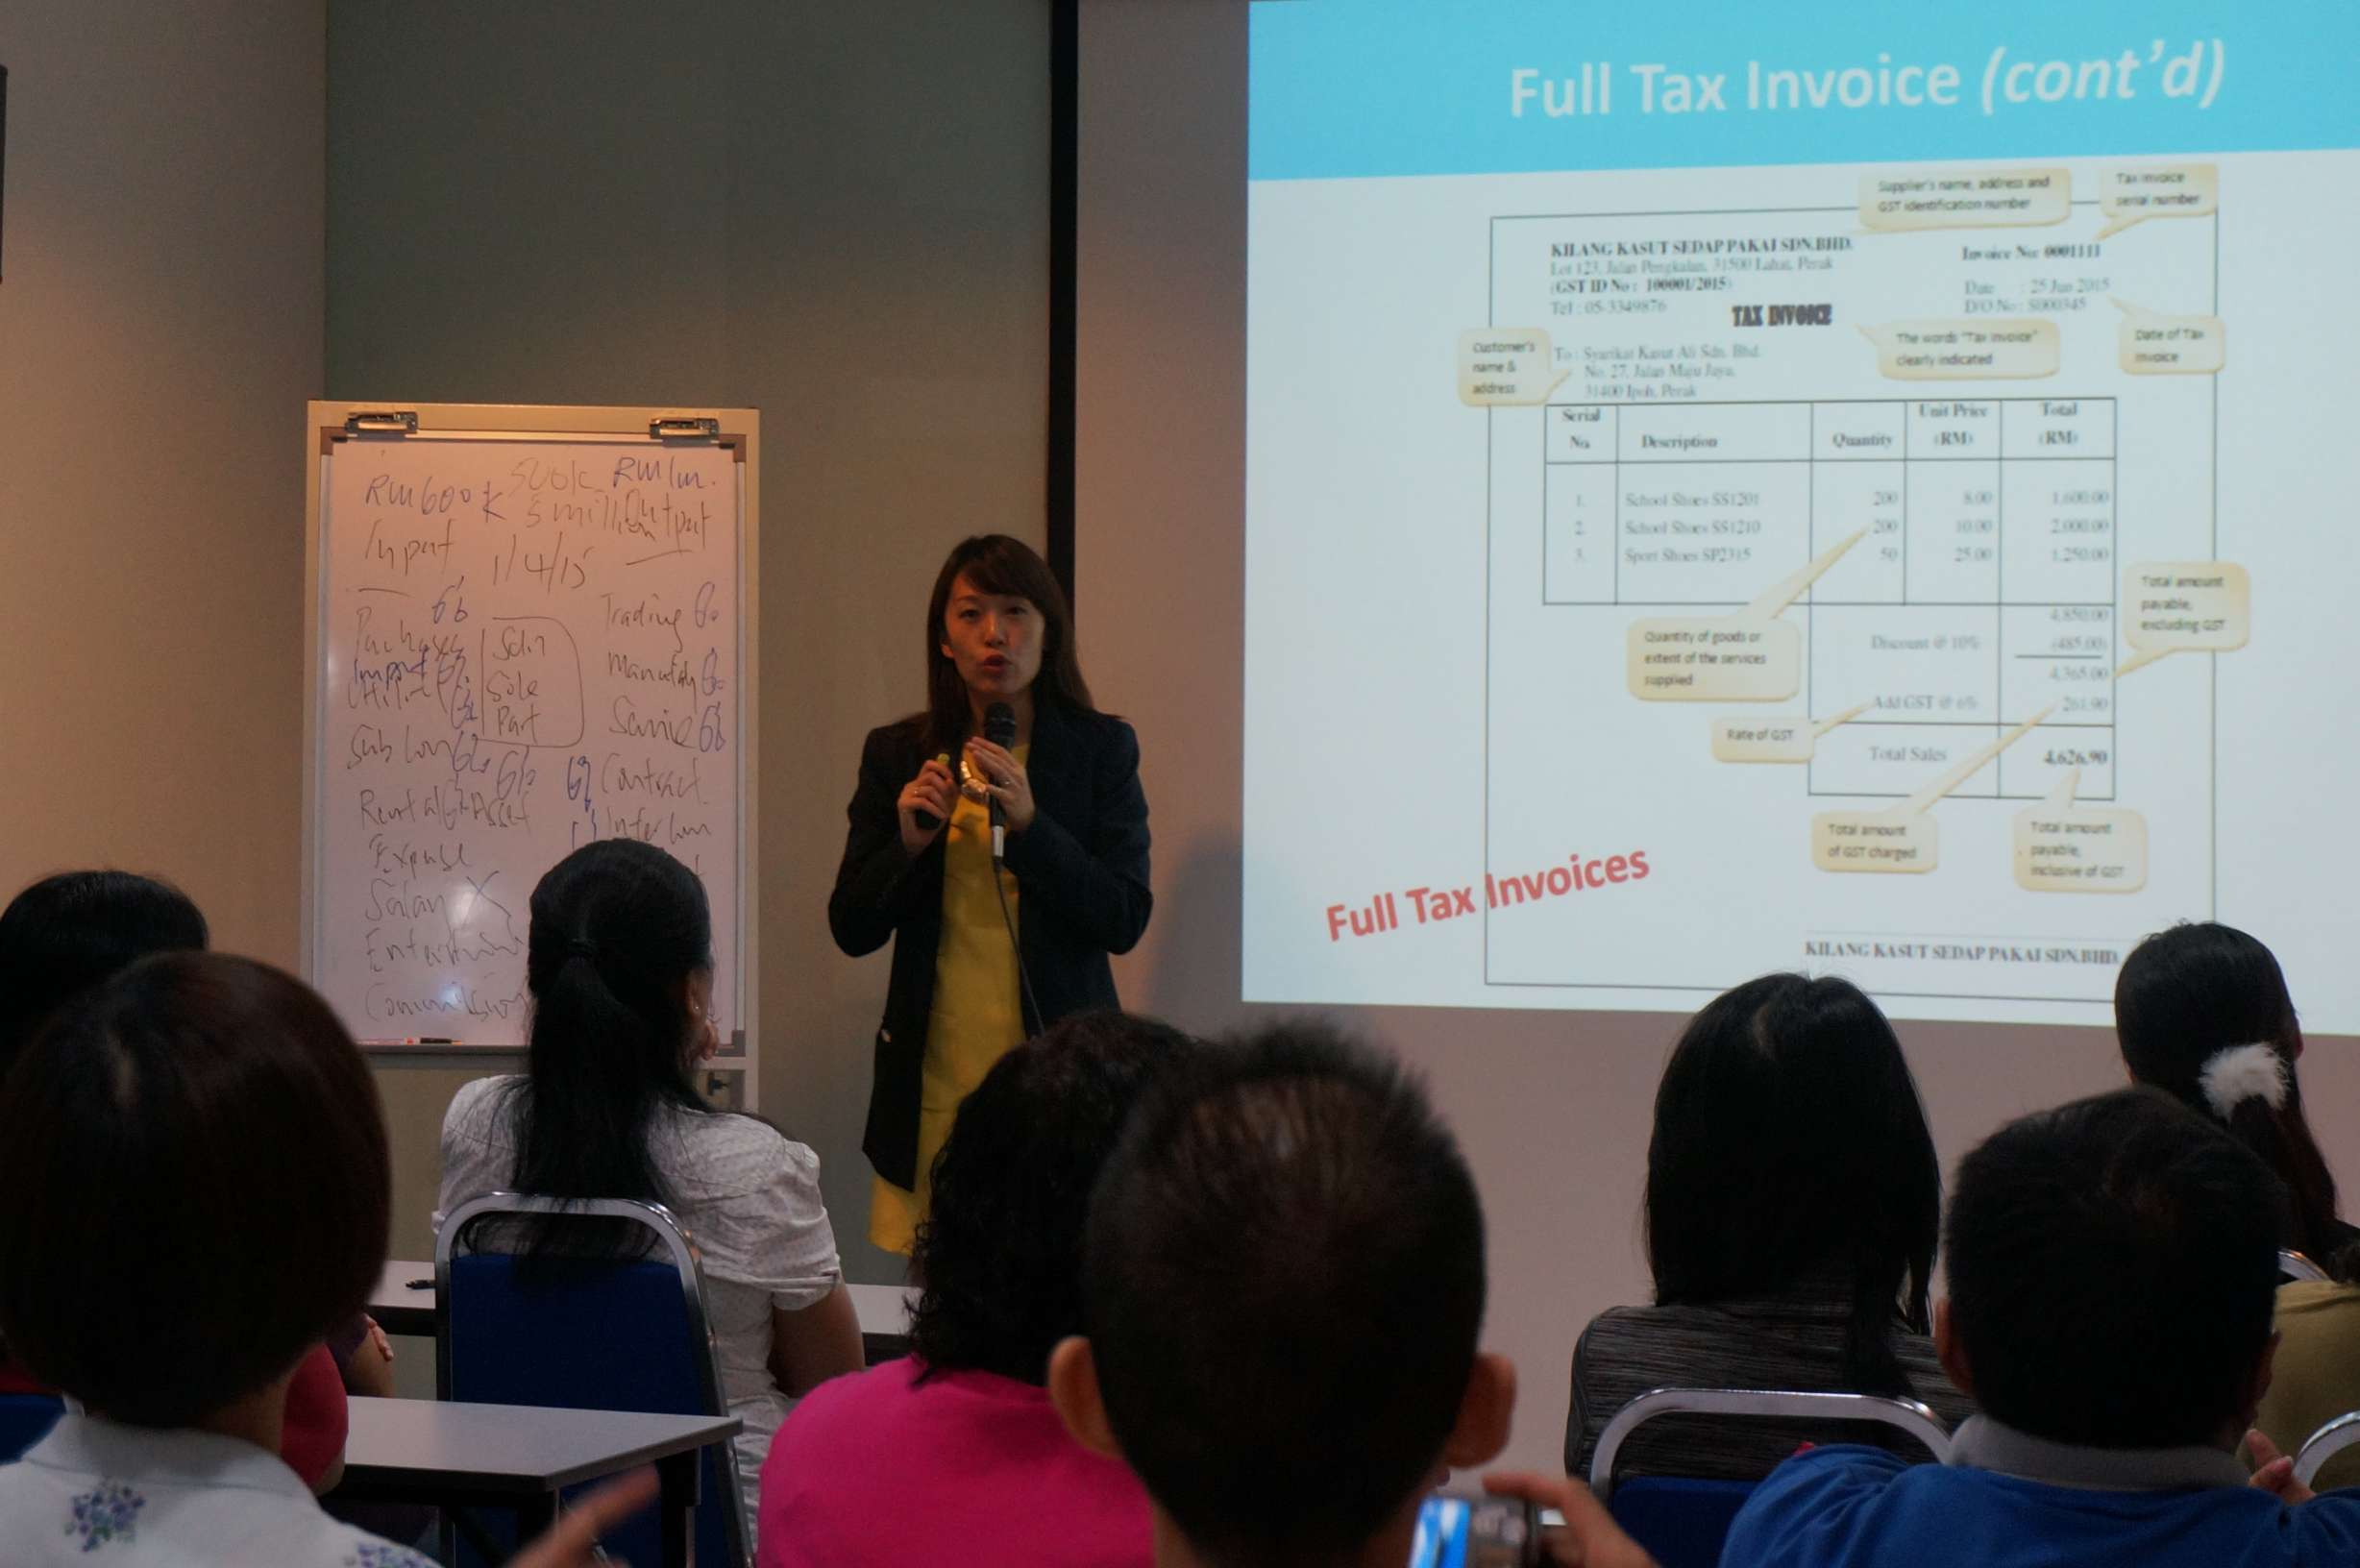 GST Overview Full House - 27 August 2014